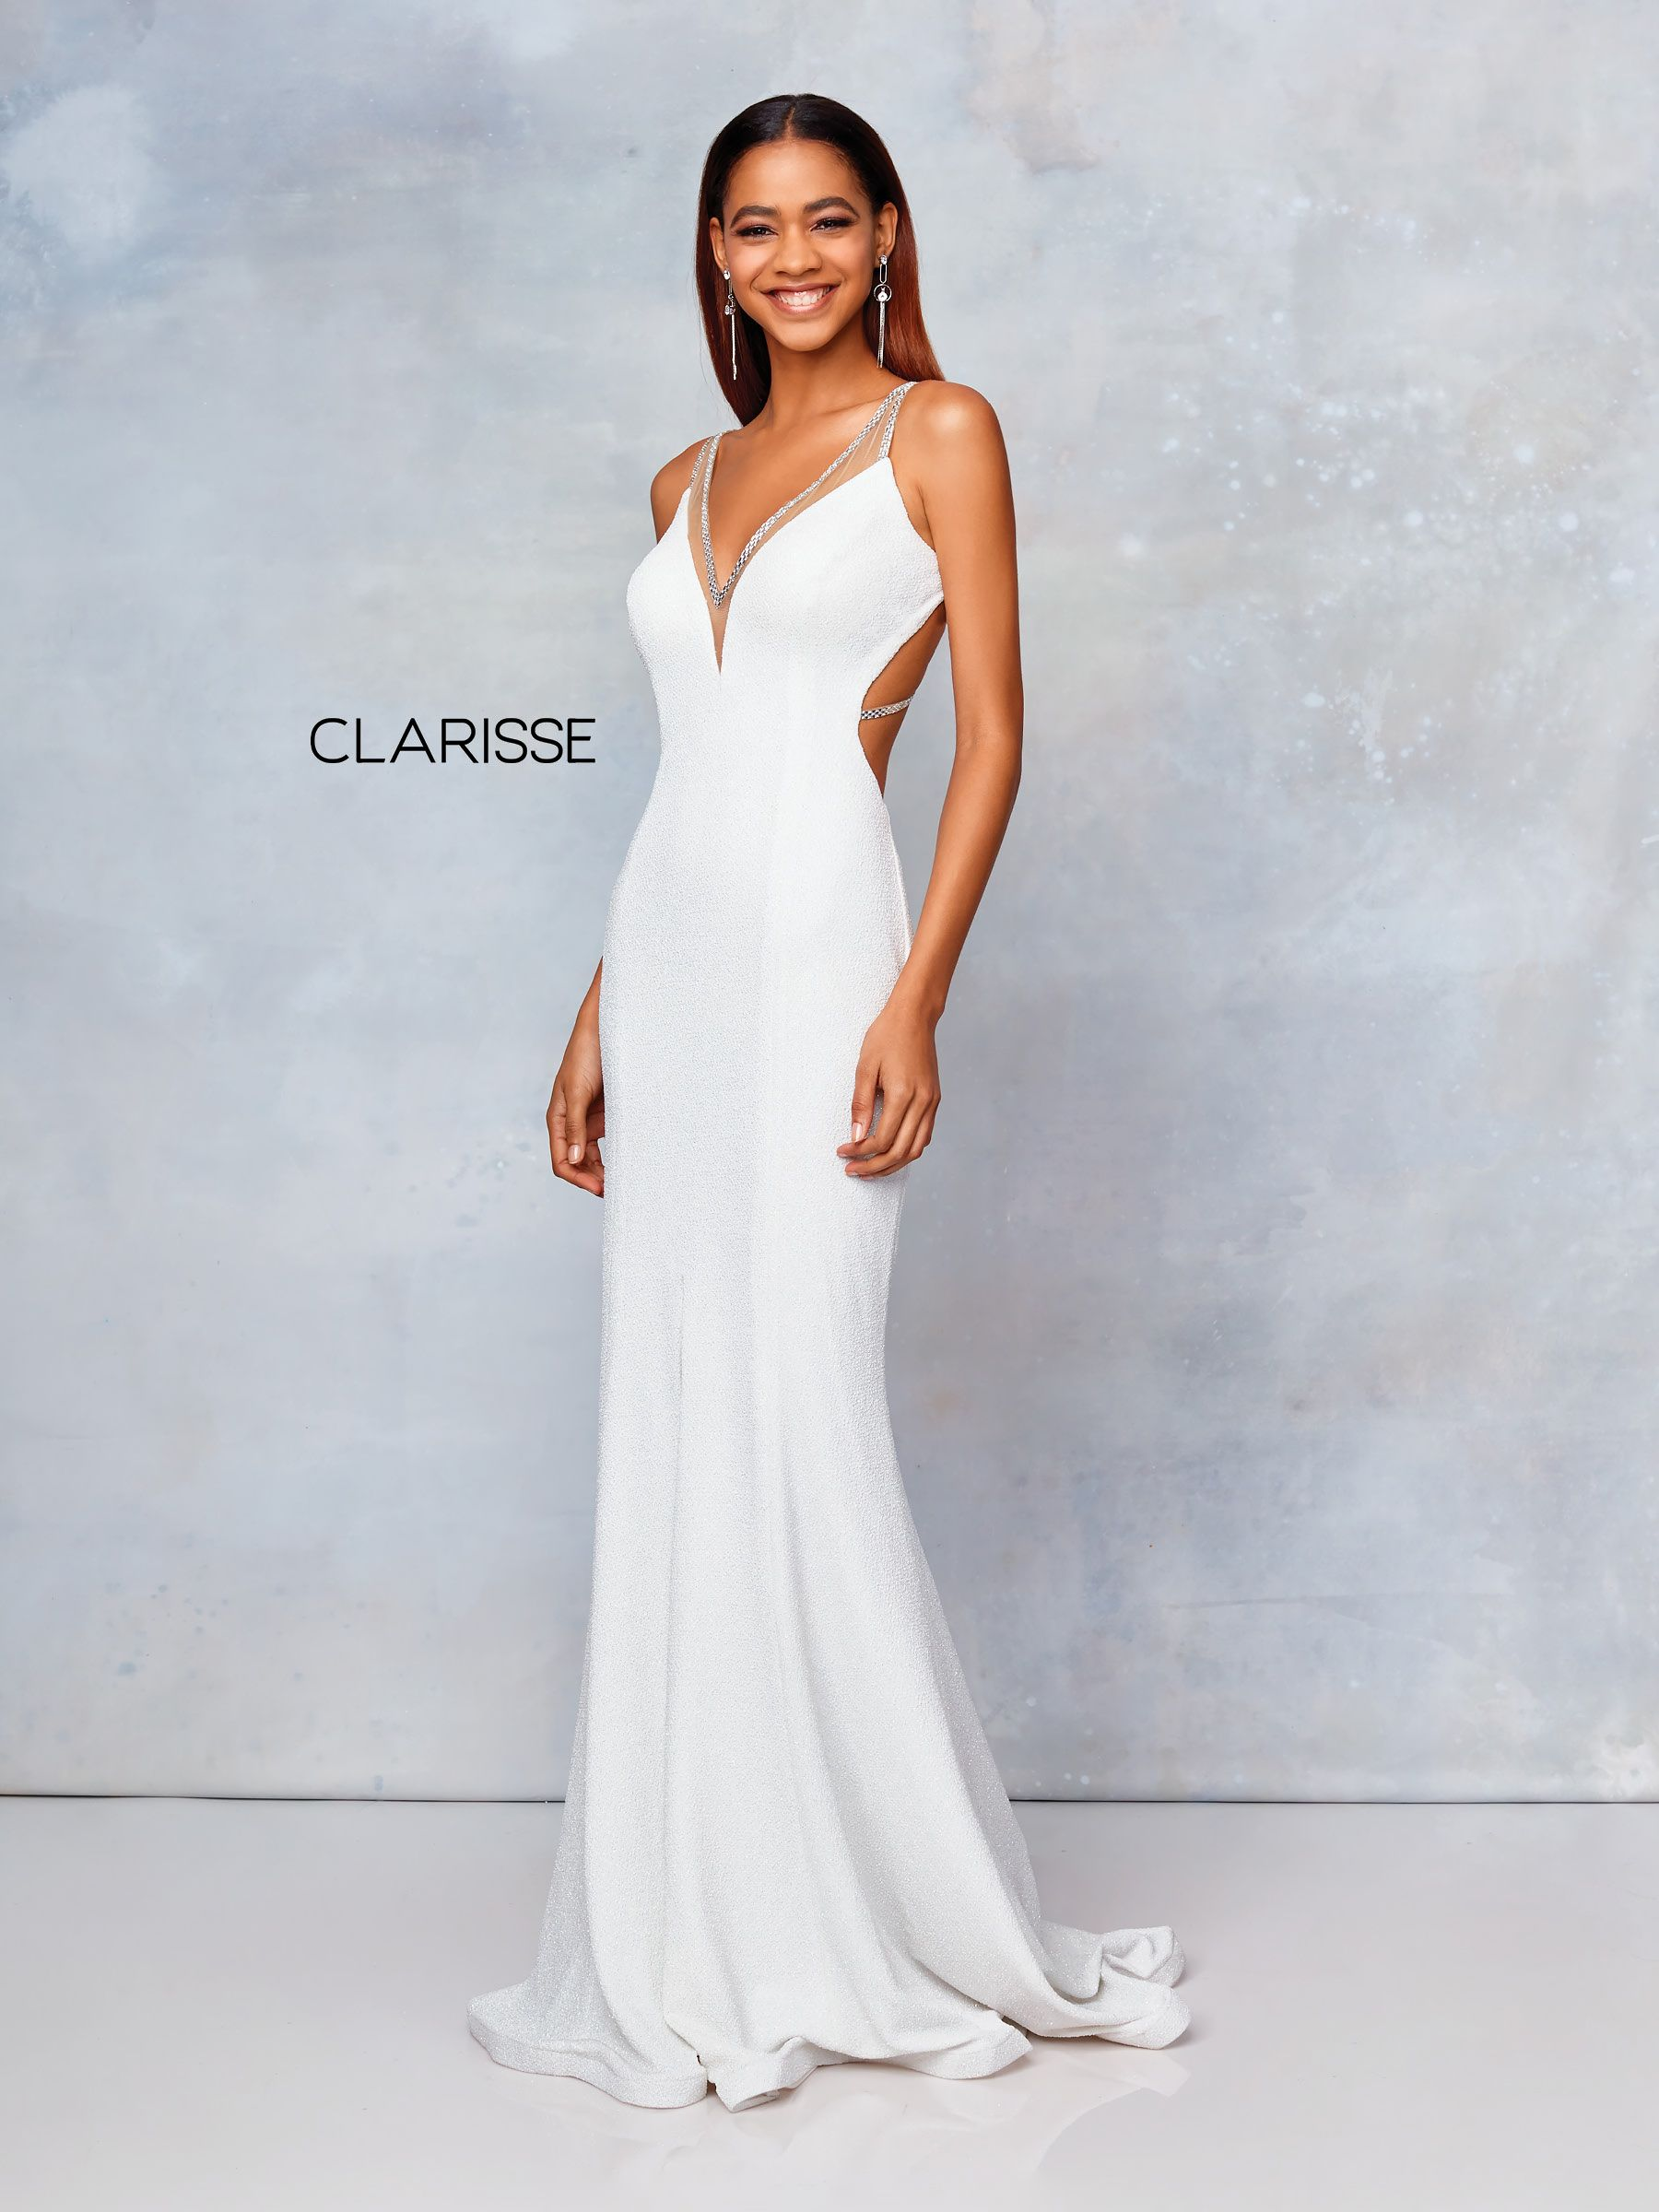 56a3c18aedb 3799 - Off White glitter jersey prom dress with cut out sides and beaded  detailed straps on a low cut back